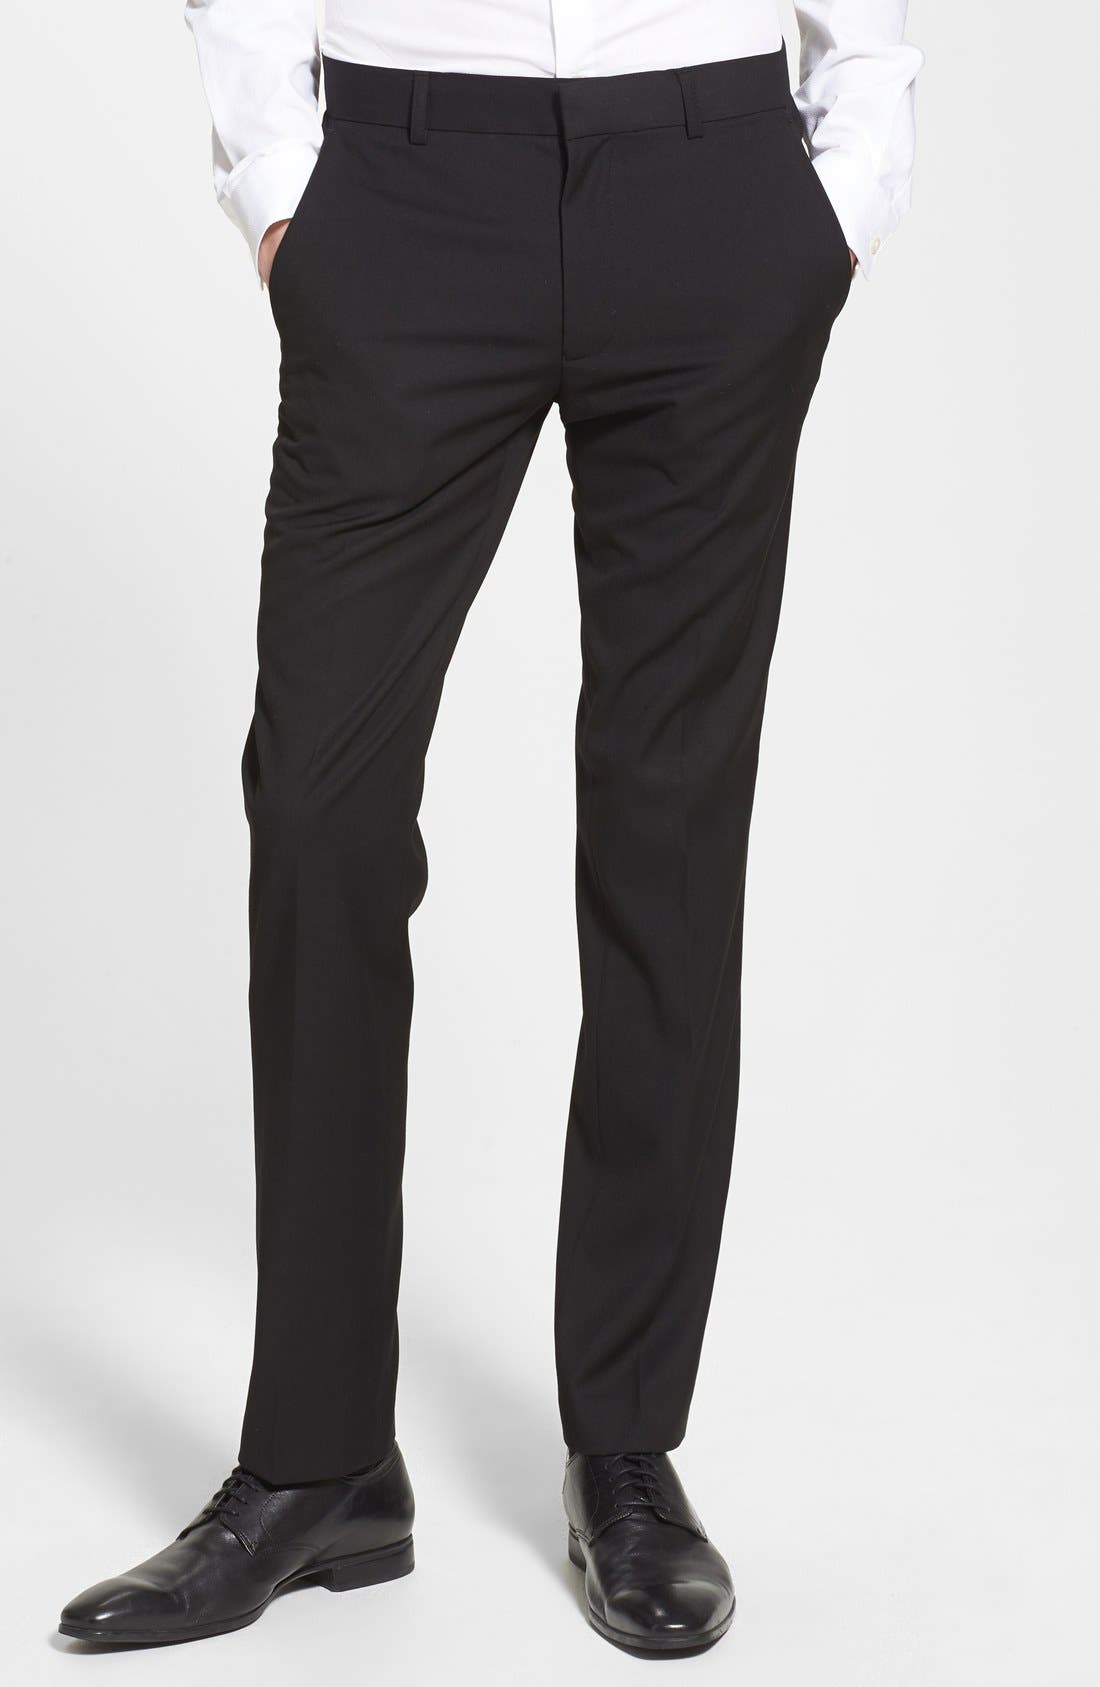 Black Textured Skinny Fit Flat Front Trousers,                         Main,                         color, Black